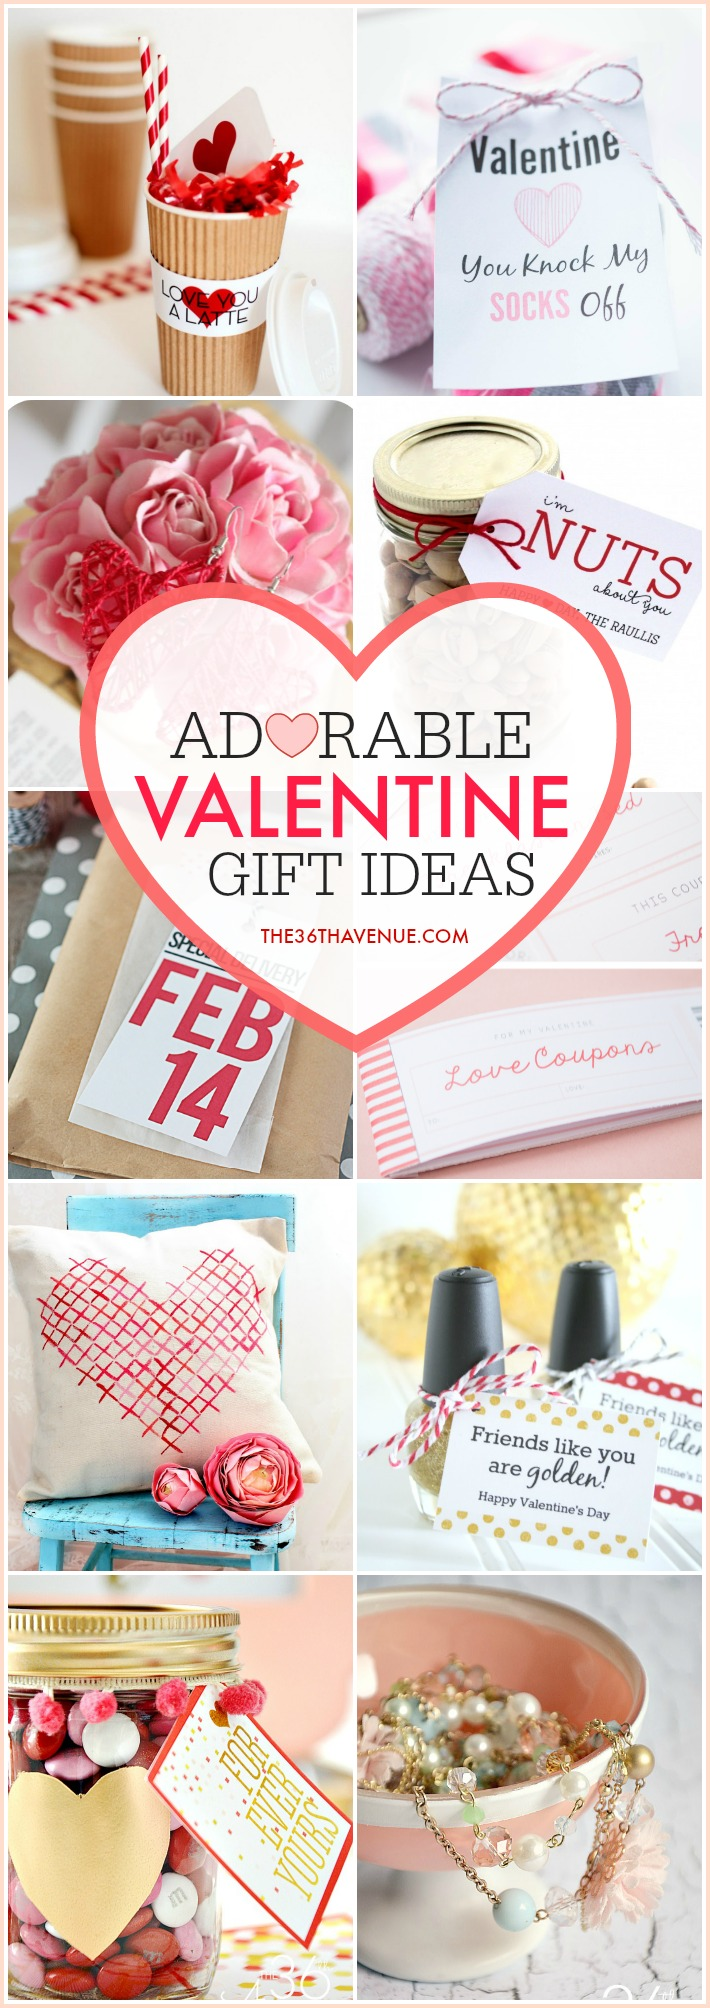 Valentine Gift Ideas at the36thavenue.com